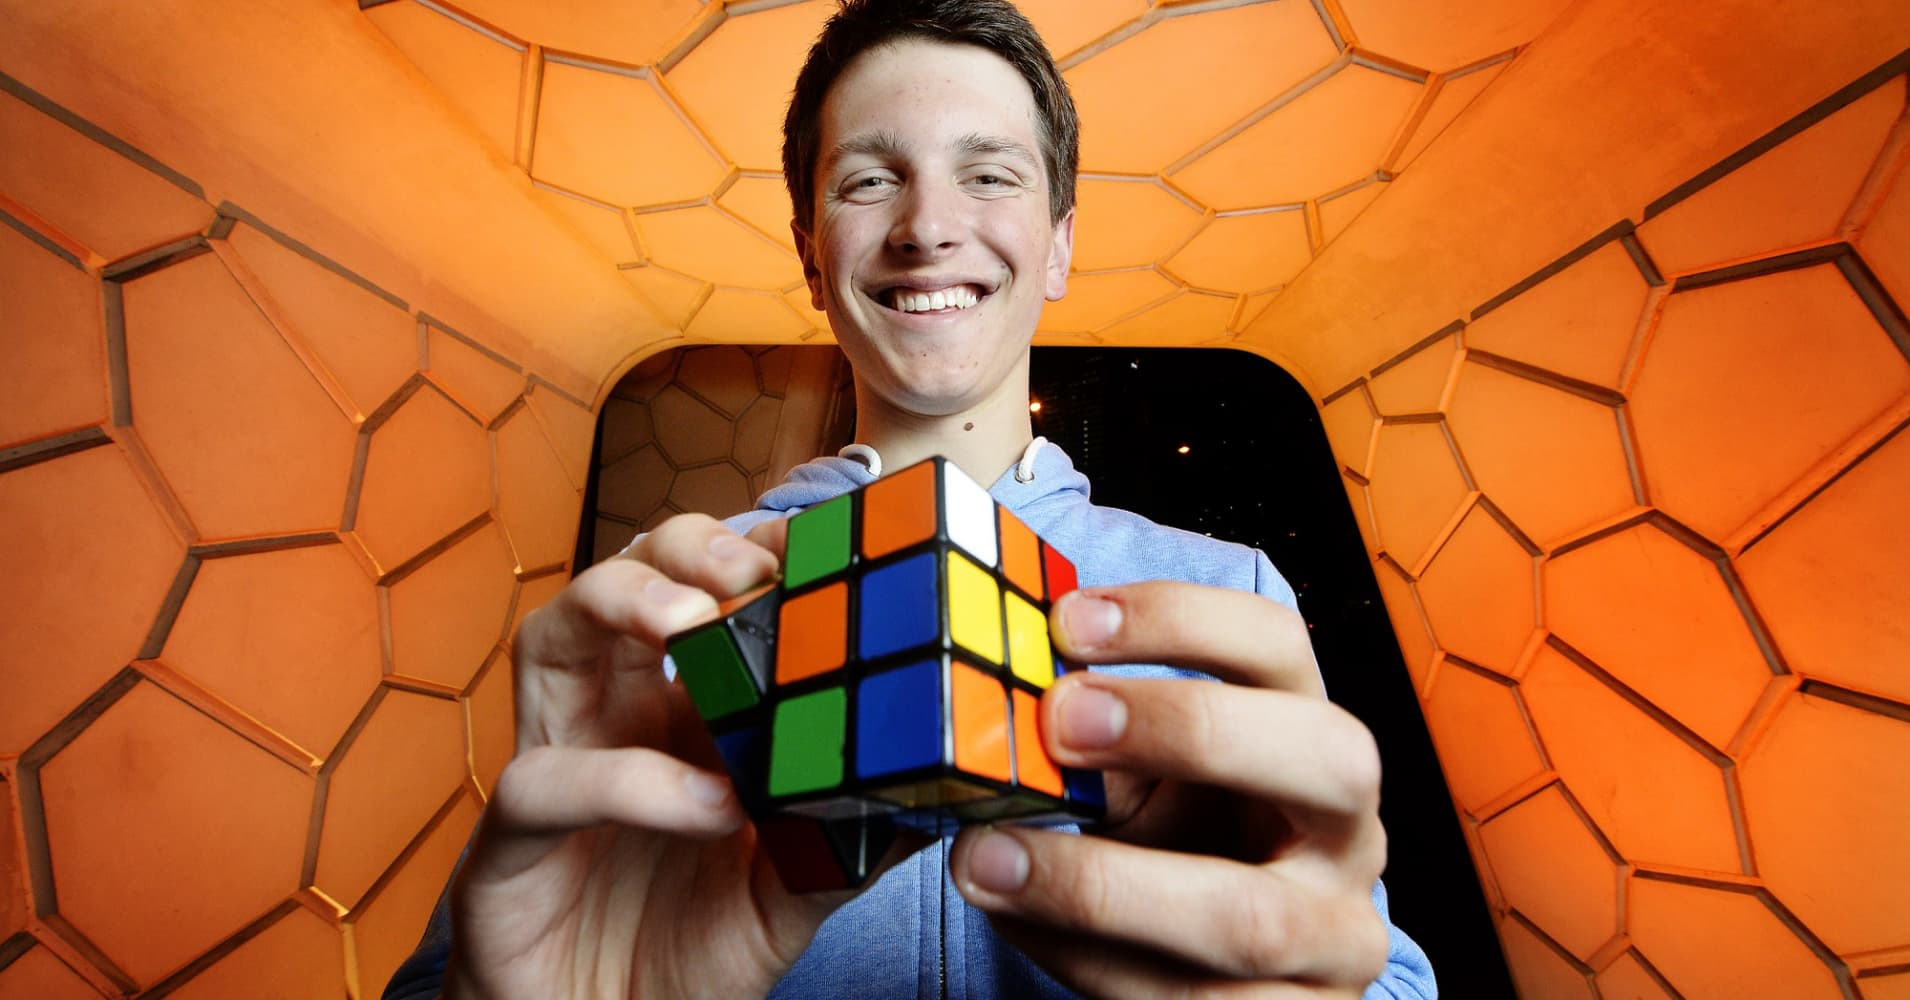 Rubiks Cube world champion Feliks Zemdegs